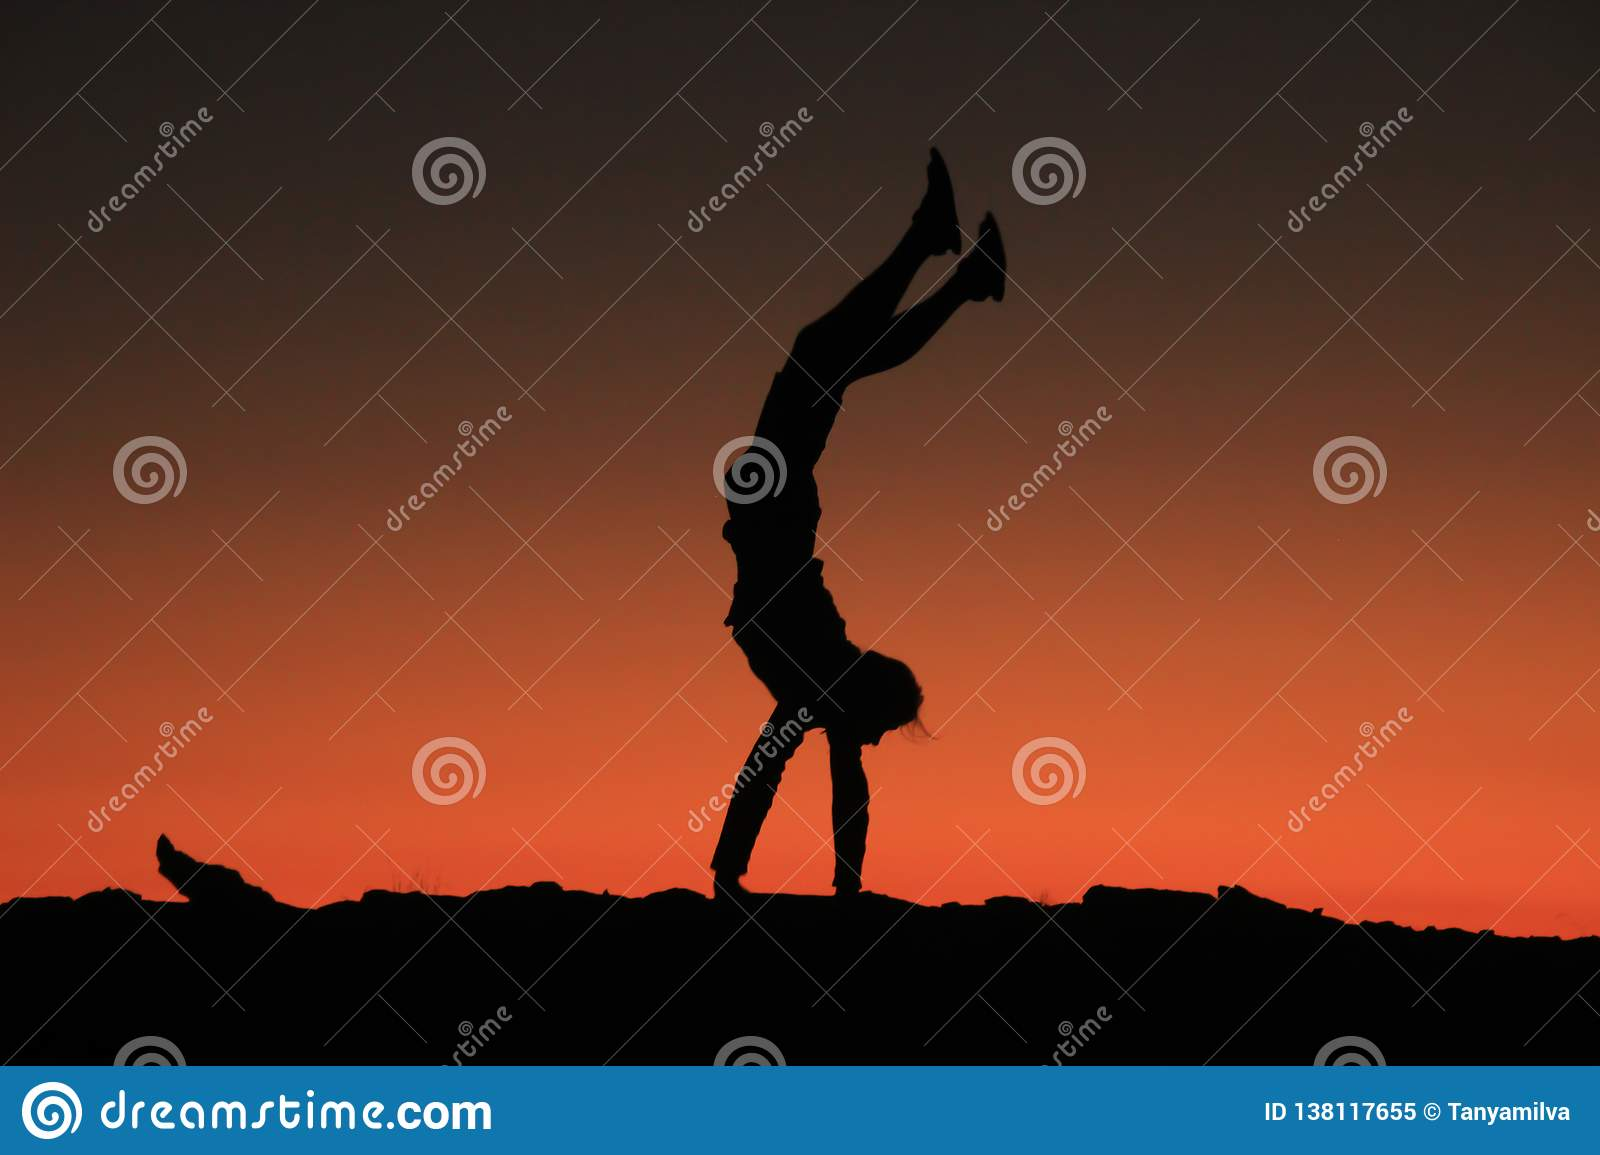 A young male traveler stands on his hands and performs acrobatic figures on a background of bright red with orange sky